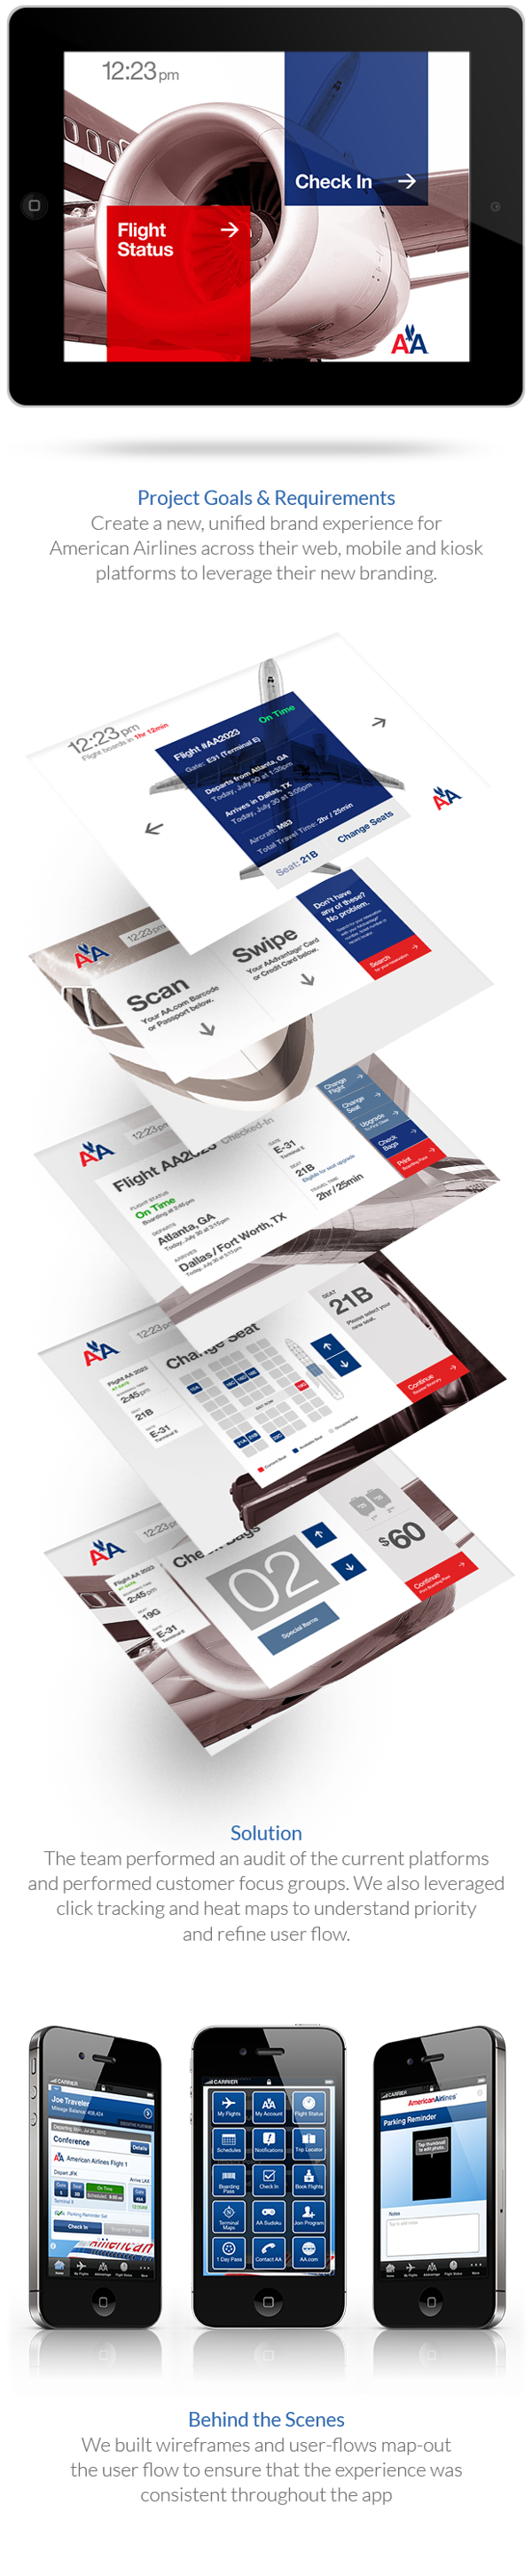 Nch Invoice Software Word American Airlines Web Mobile Kiosk By Steven Fisher Via Behance  Us Customs Invoice Excel with Invoice Generator Online Free American Airlines Web Mobile Kiosk By Steven Fisher Via Behance Confirm Email Receipt Pdf